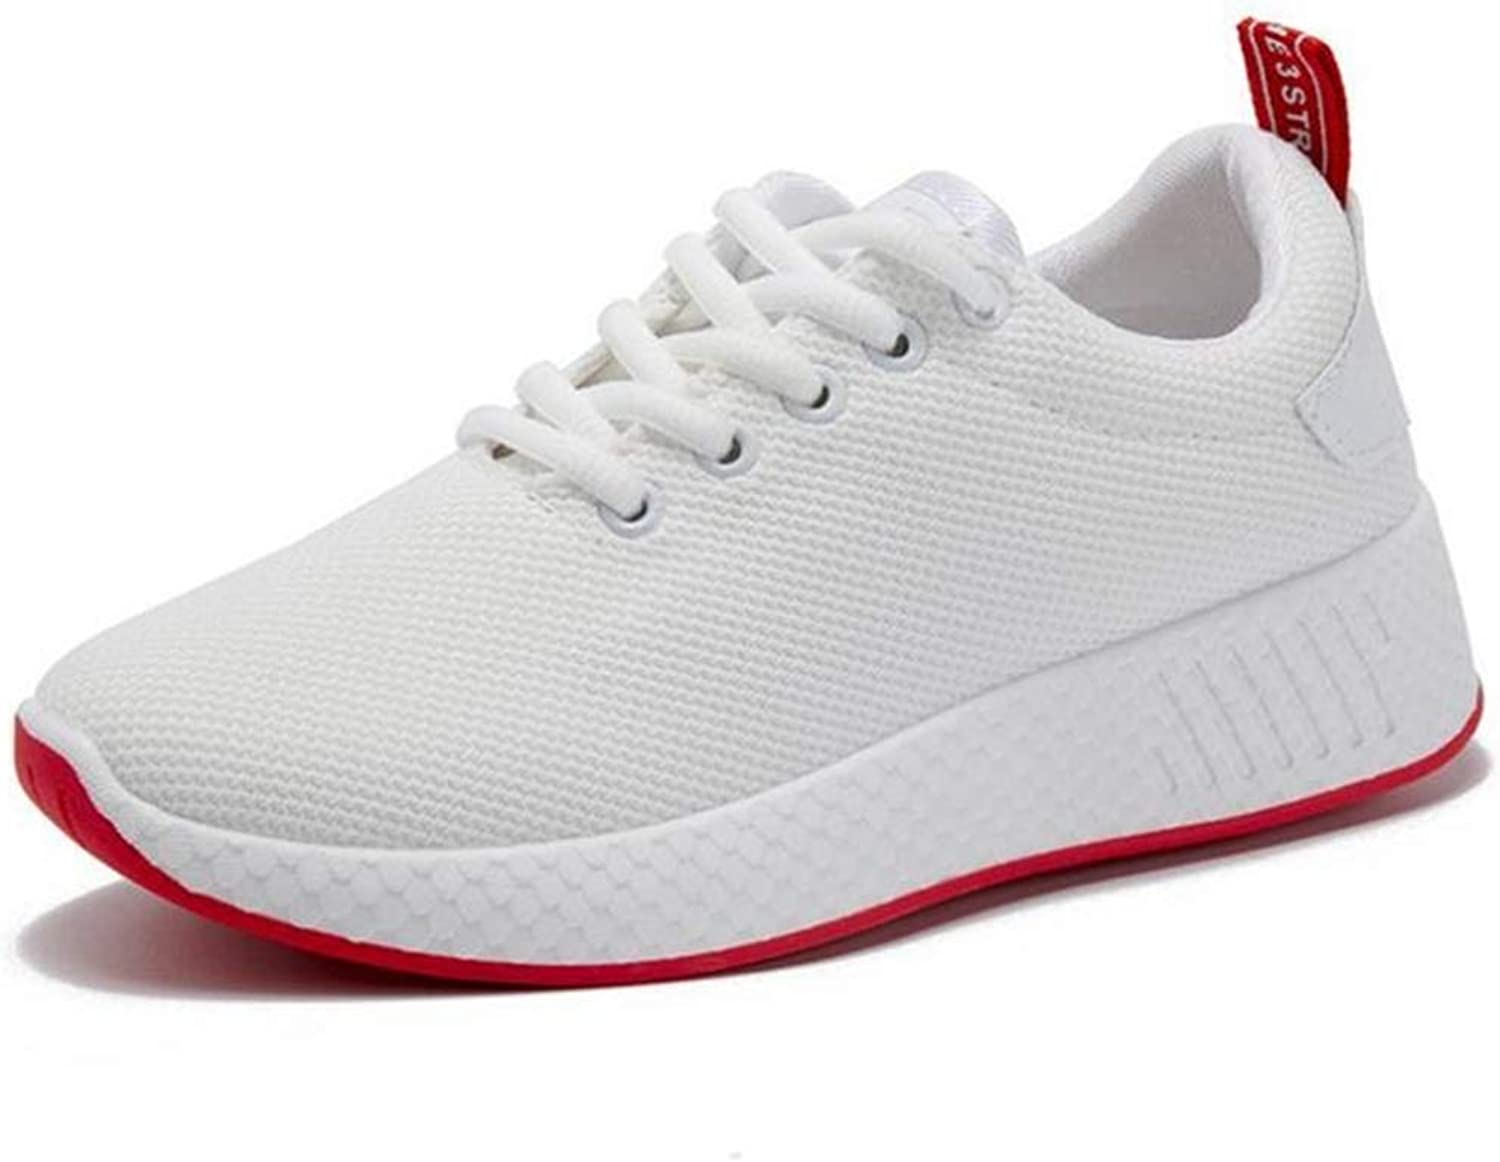 The New Casual Air Mesh Female shoes for Women Basket Spring Designer Wedges White Platform Sneakers